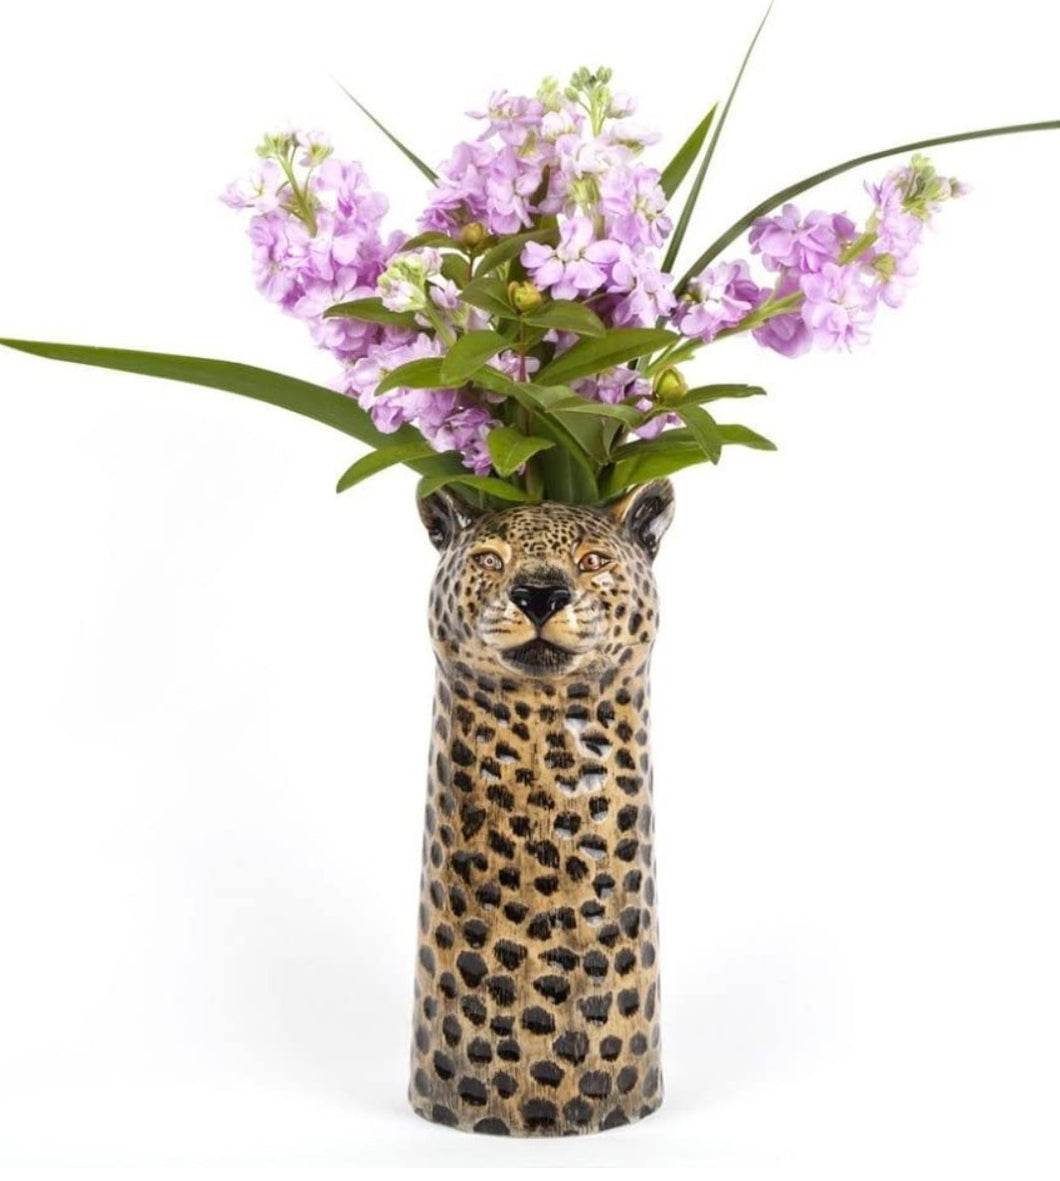 Leopard Flower Vase by Quail (large)